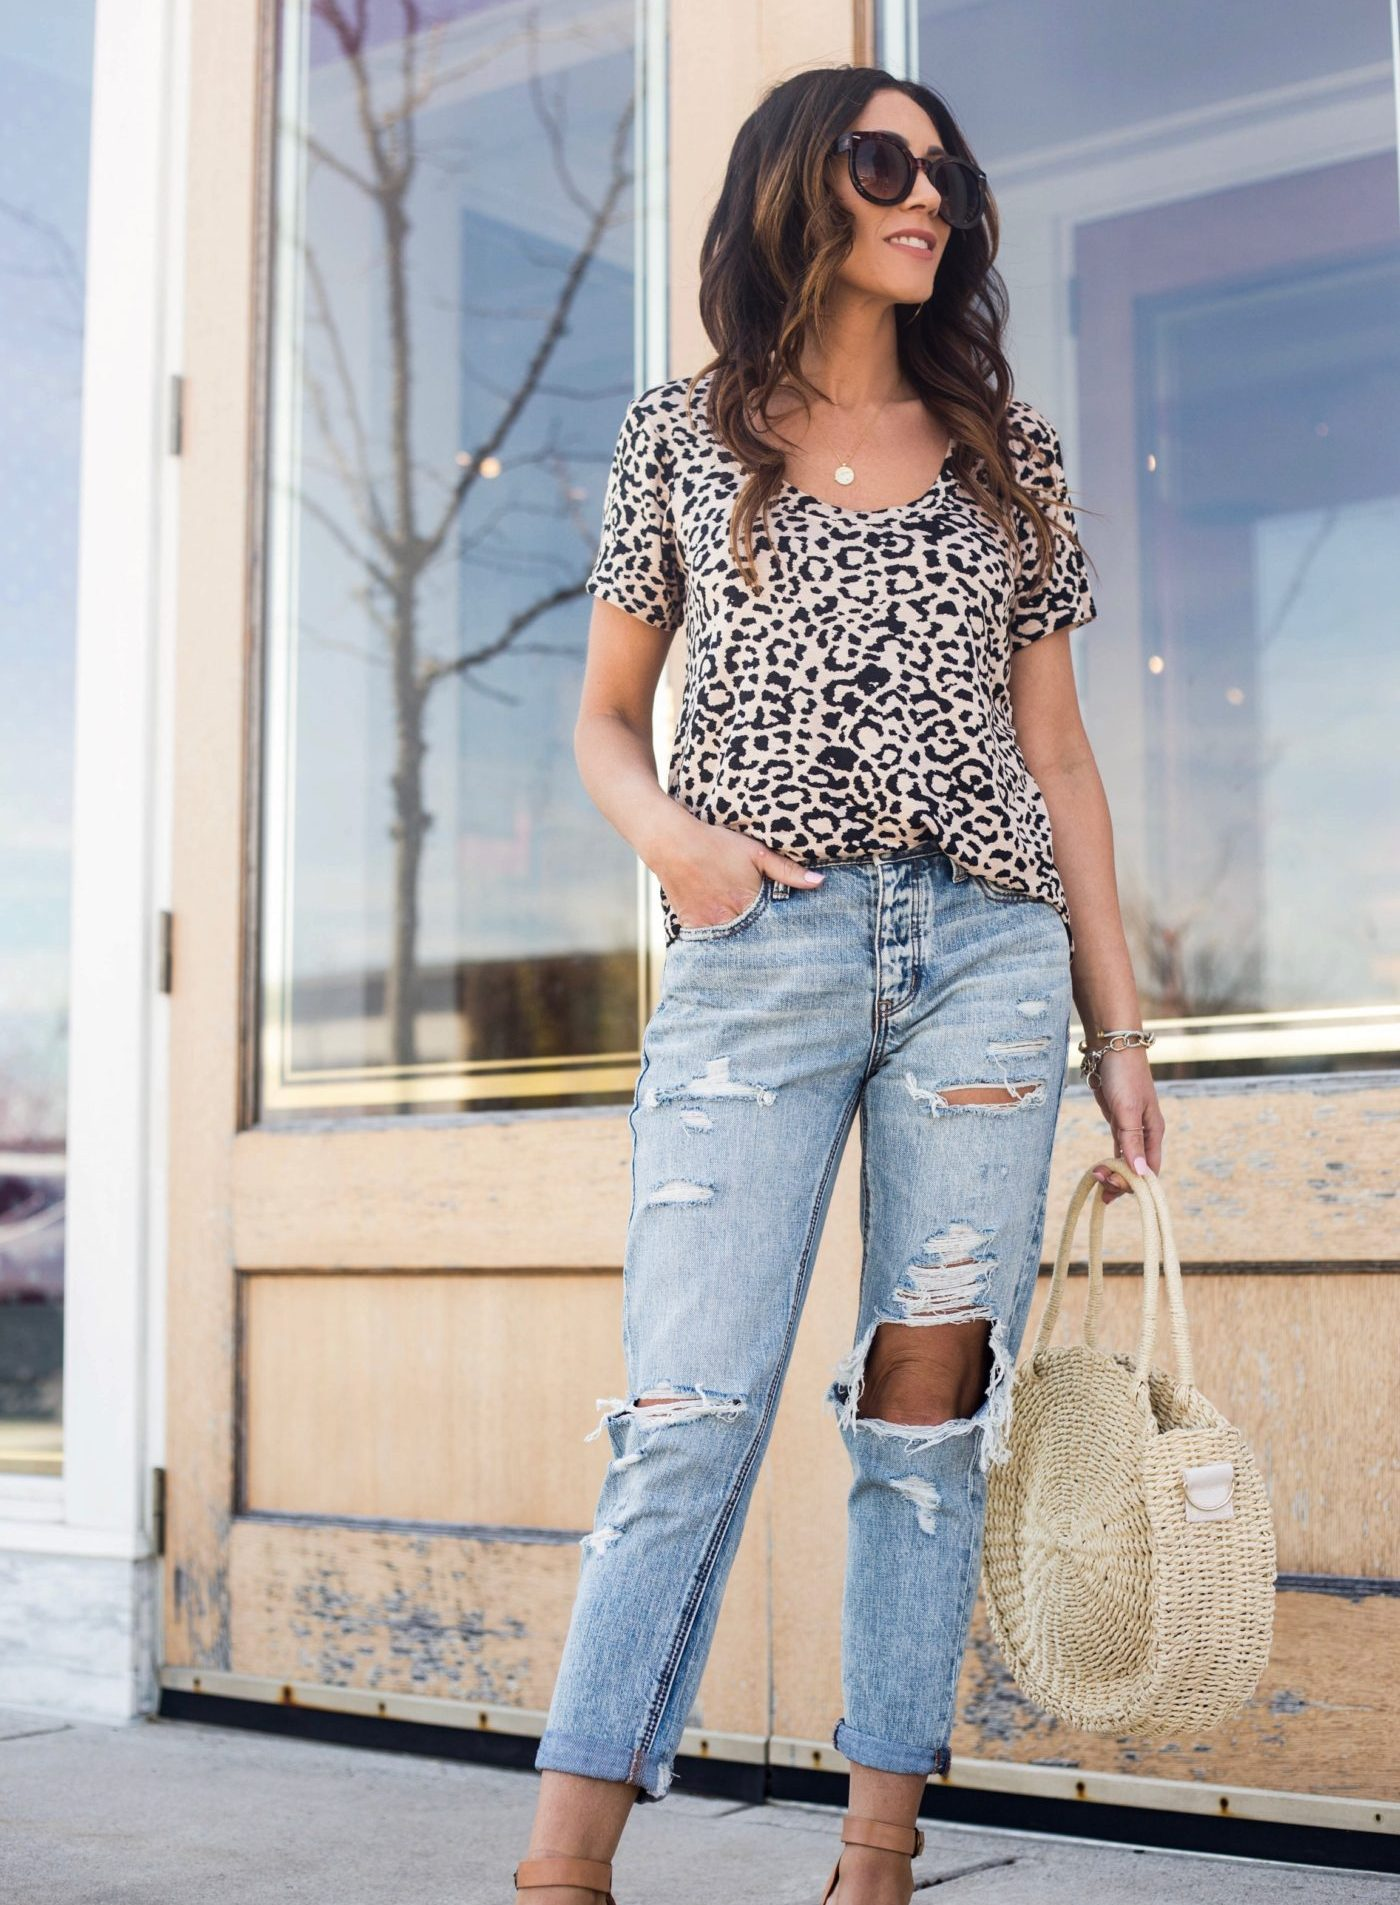 Casual spring style - Leopard tee